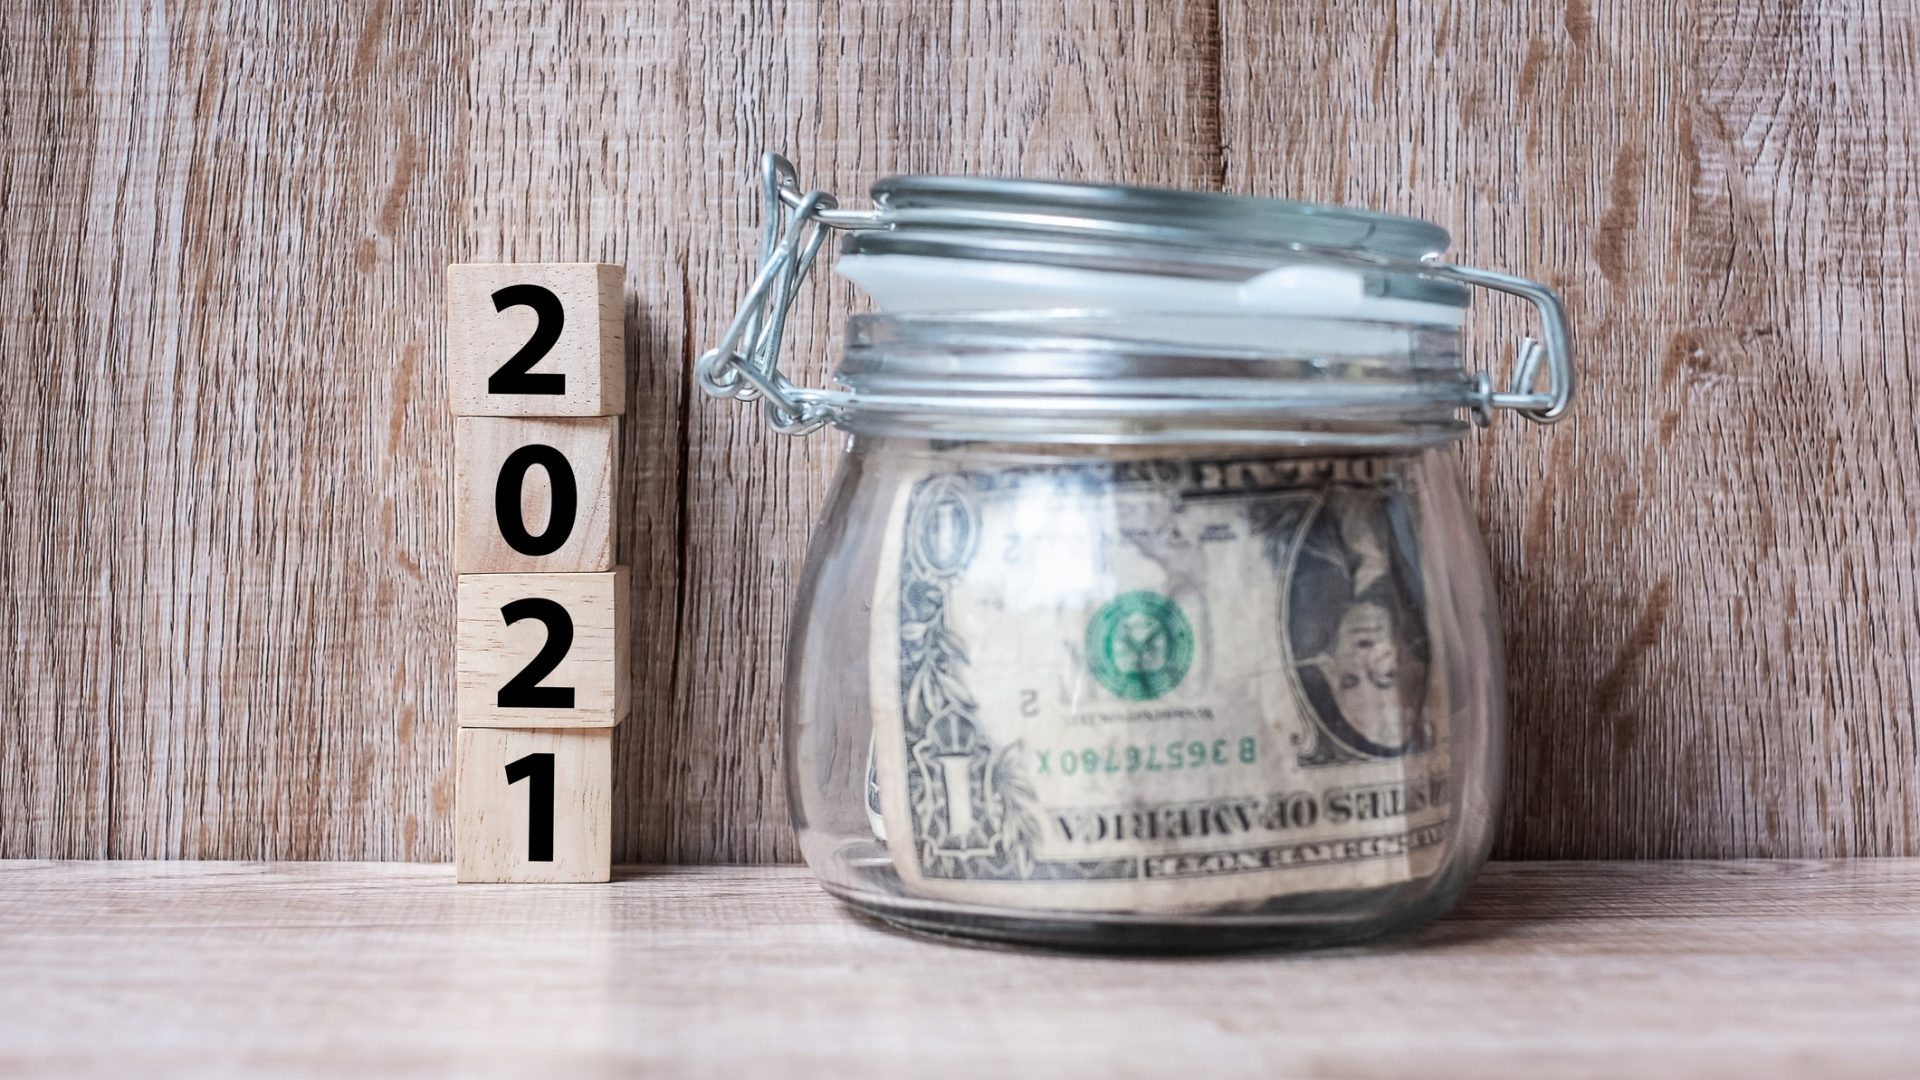 The Top Expenses To Cut From Your Budget in 2021